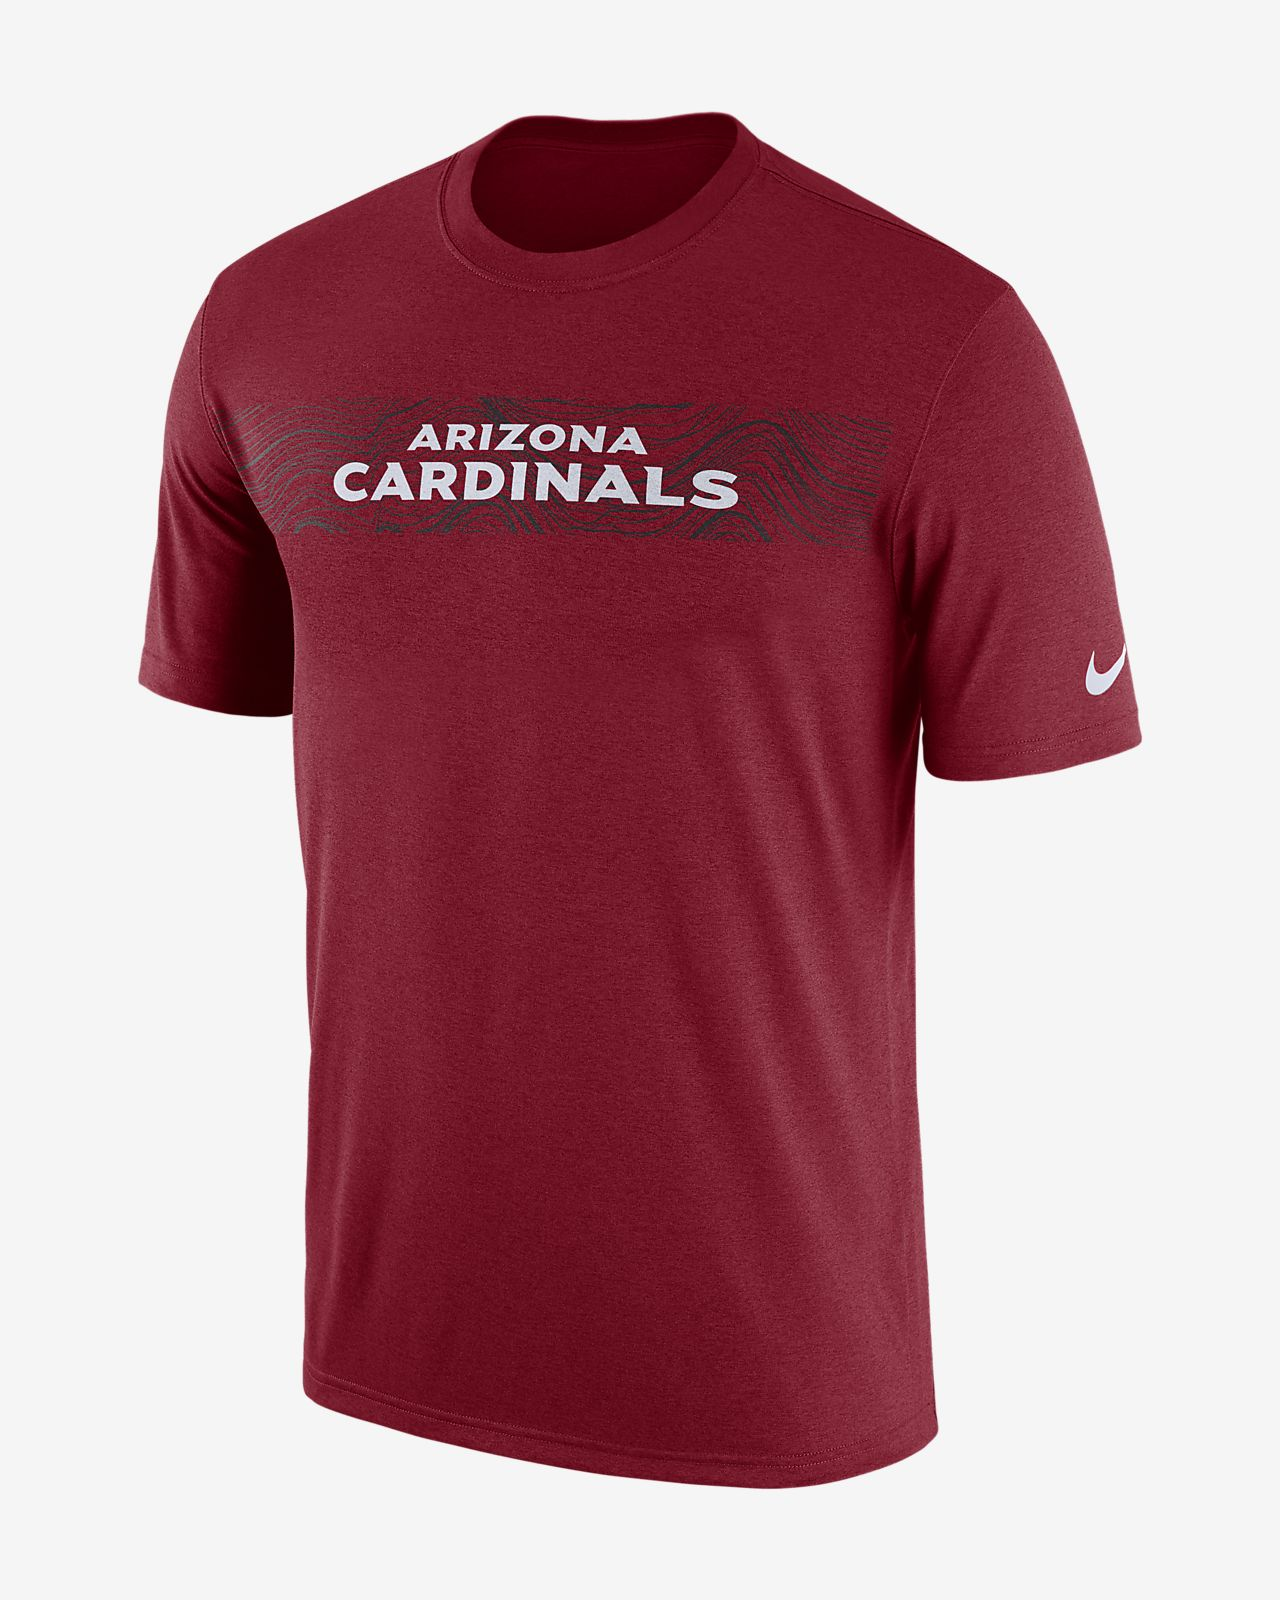 Playera para hombre Nike Dri-FIT Legend Seismic (NFL Cardinals)